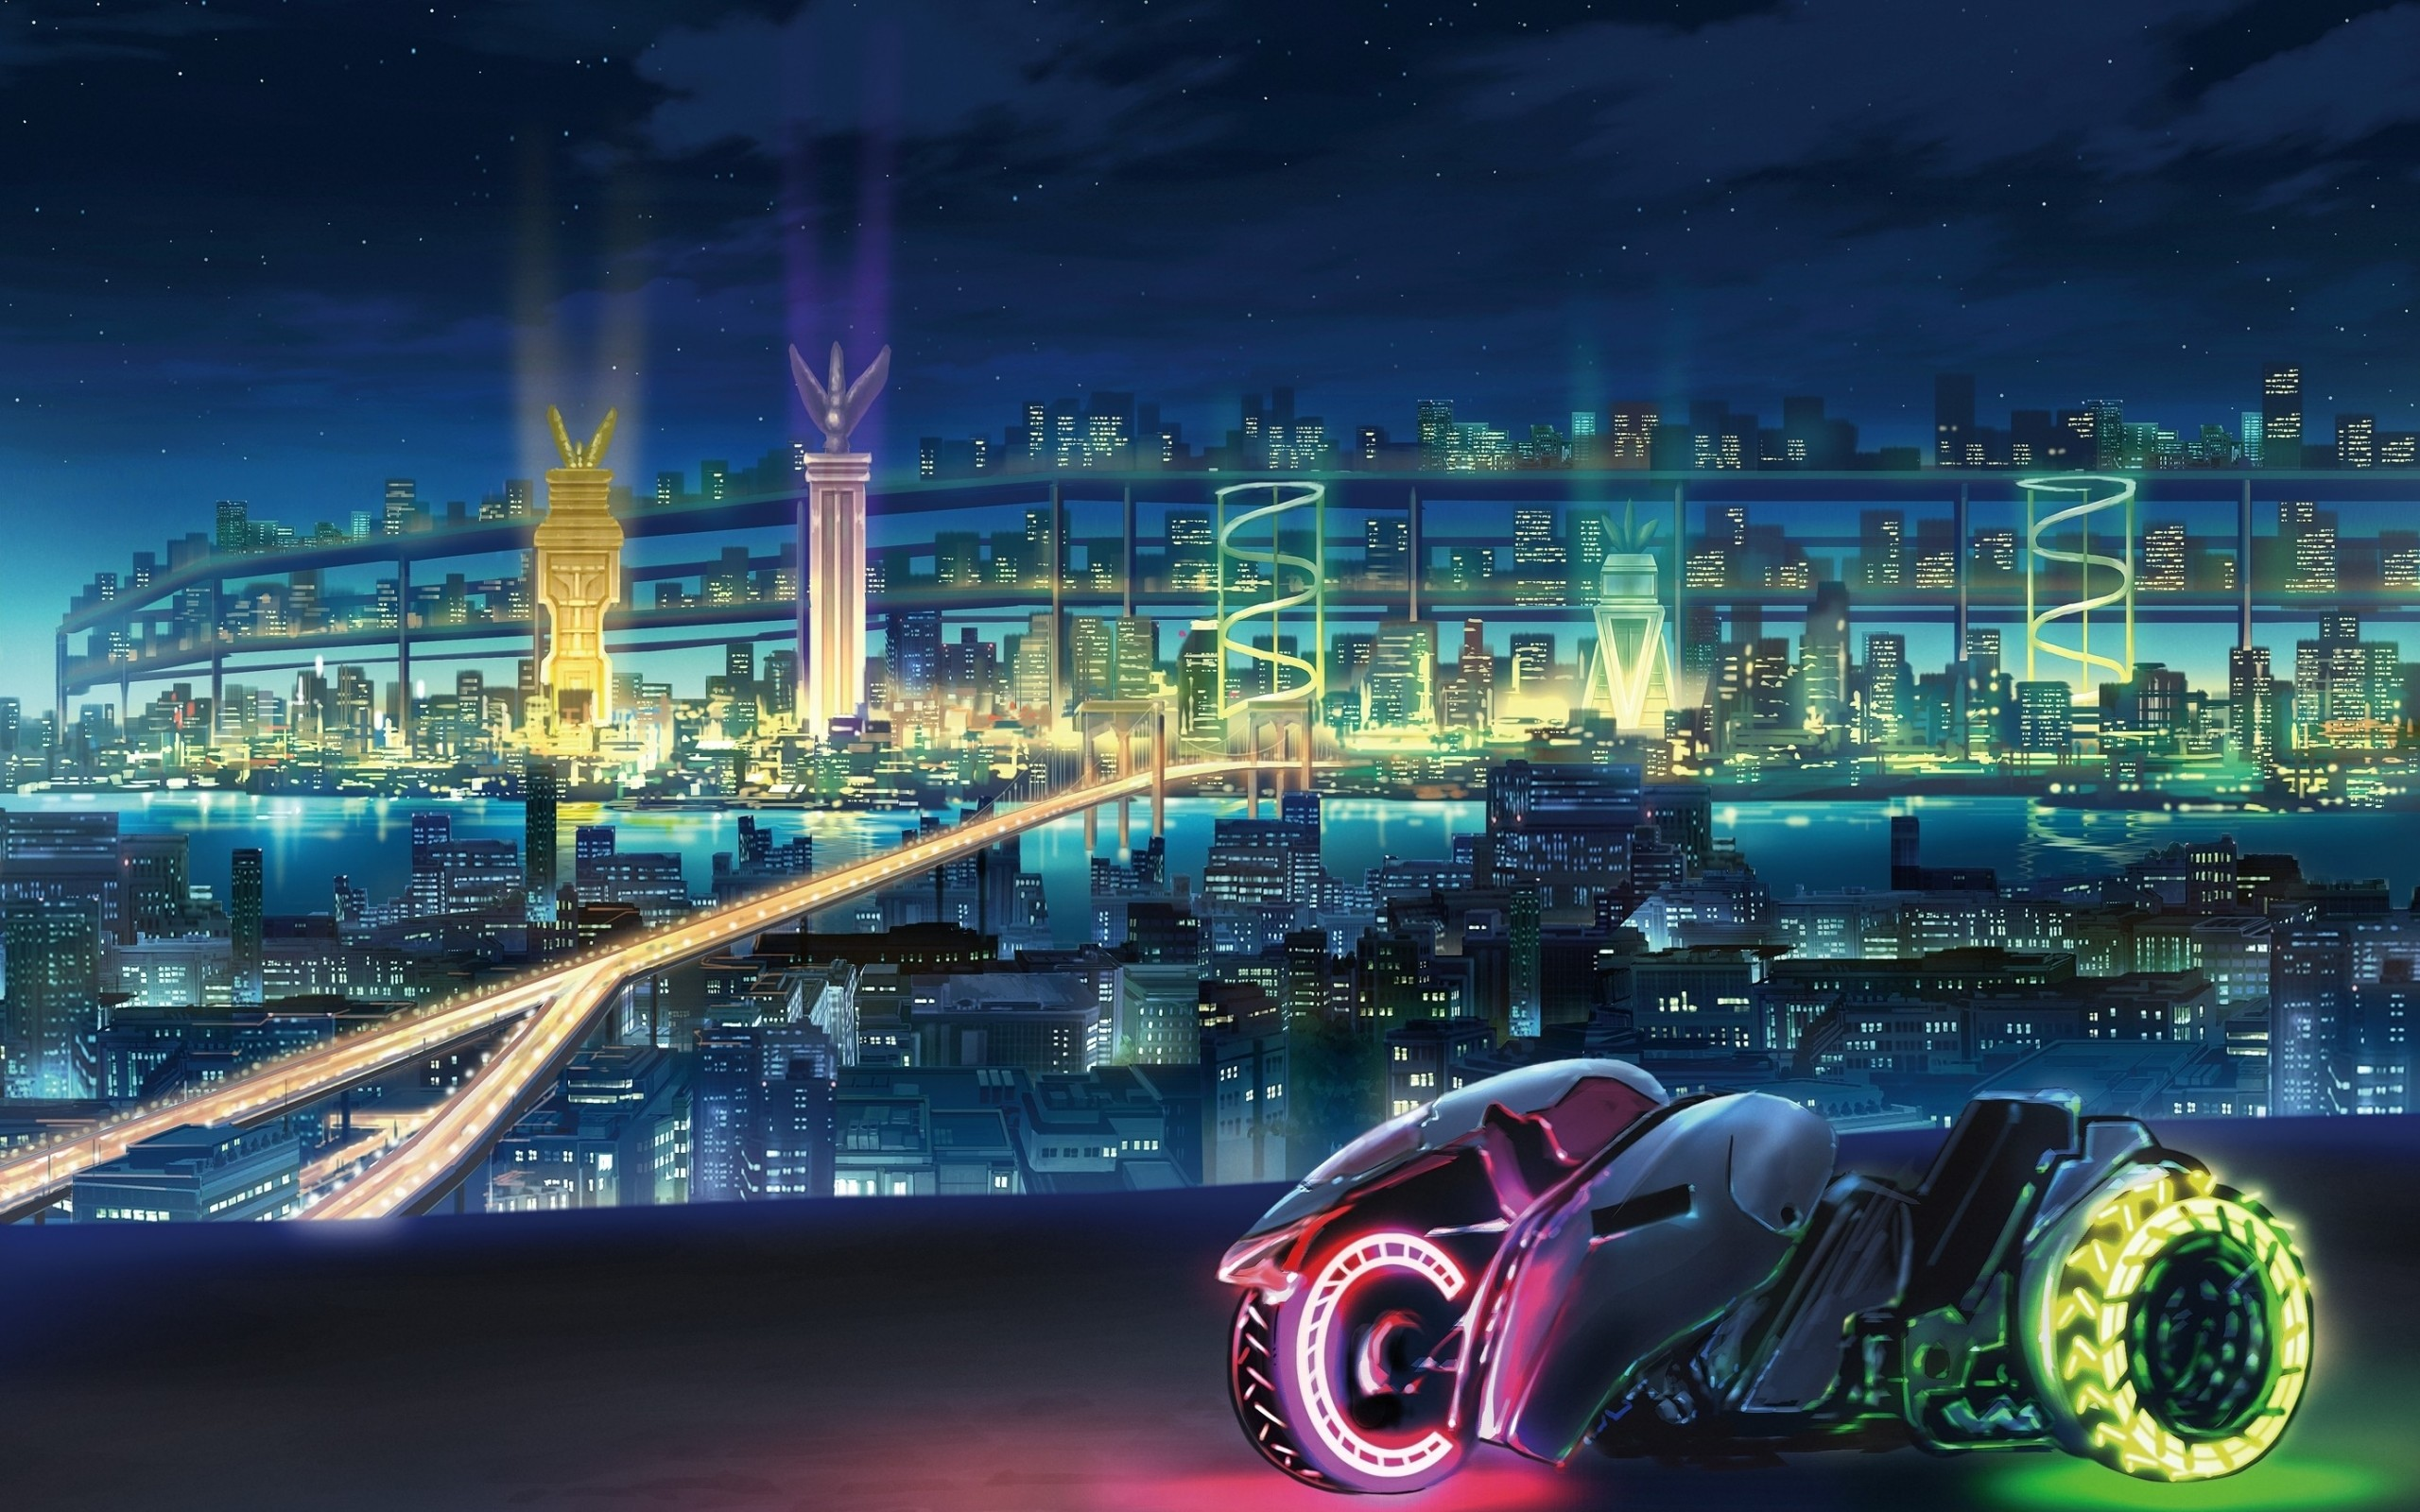 Wallpaper · Related image · Neon WallpaperSteampunk …